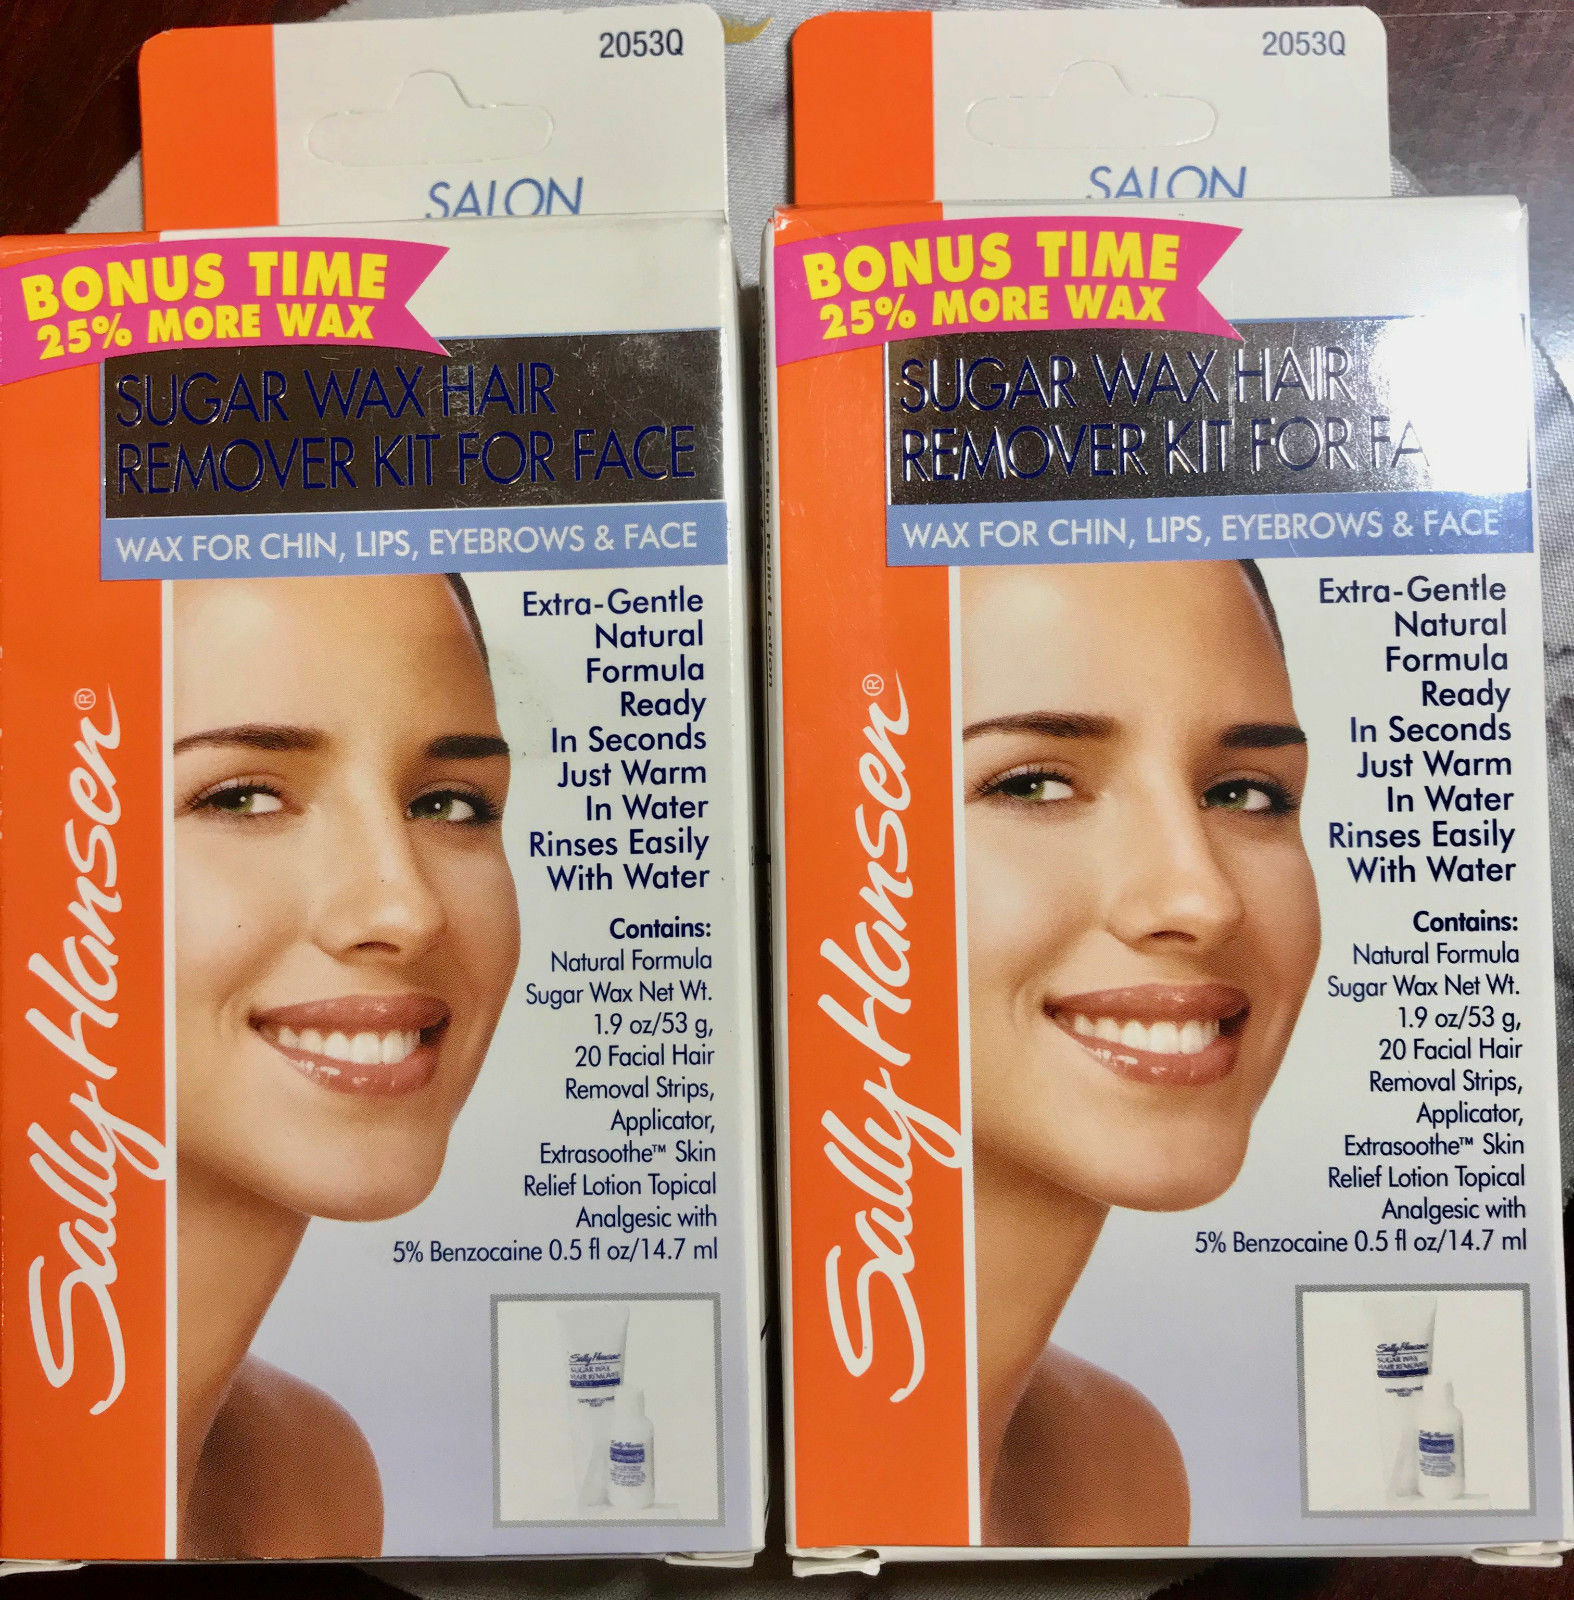 2x Sally Hansen Sugar Wax Hair Remover Kit For Face For Sale